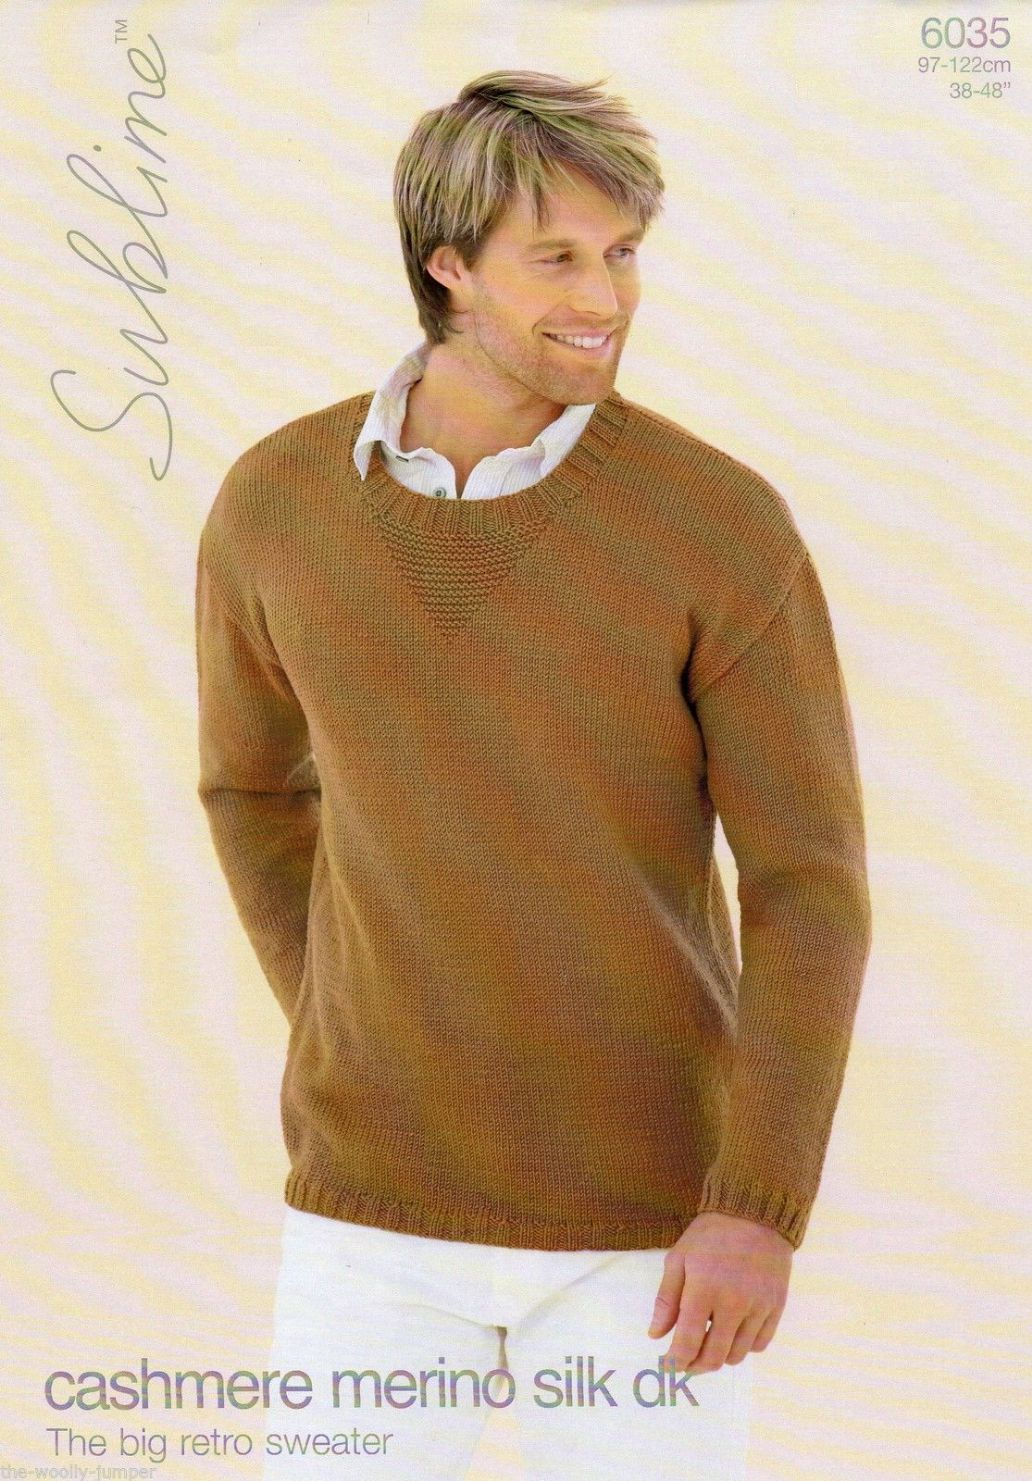 Norwegian Men\'S Sweater Knitting Patterns - Sweater Jeans And Boots